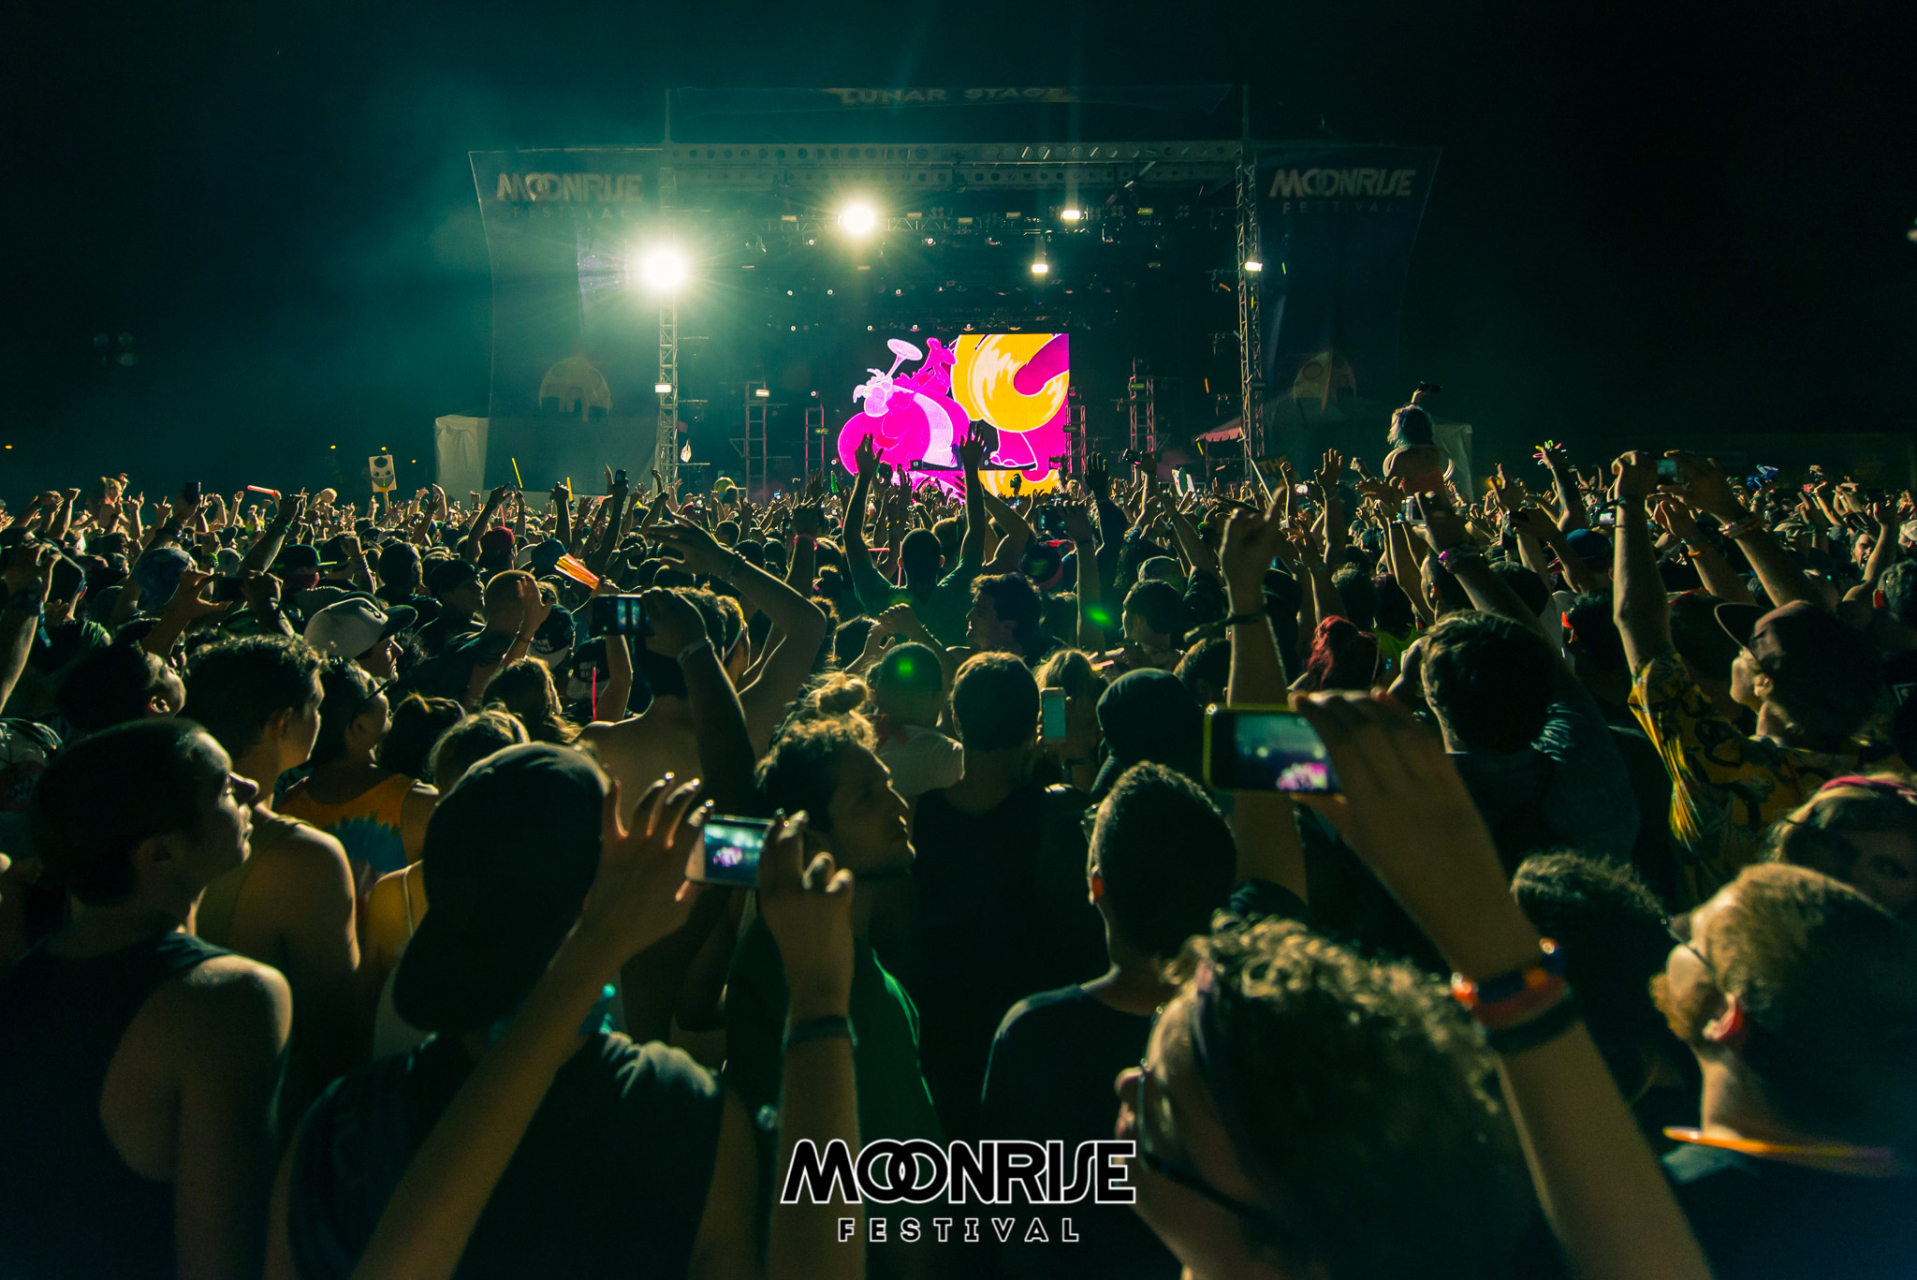 Moonrise_day2-122